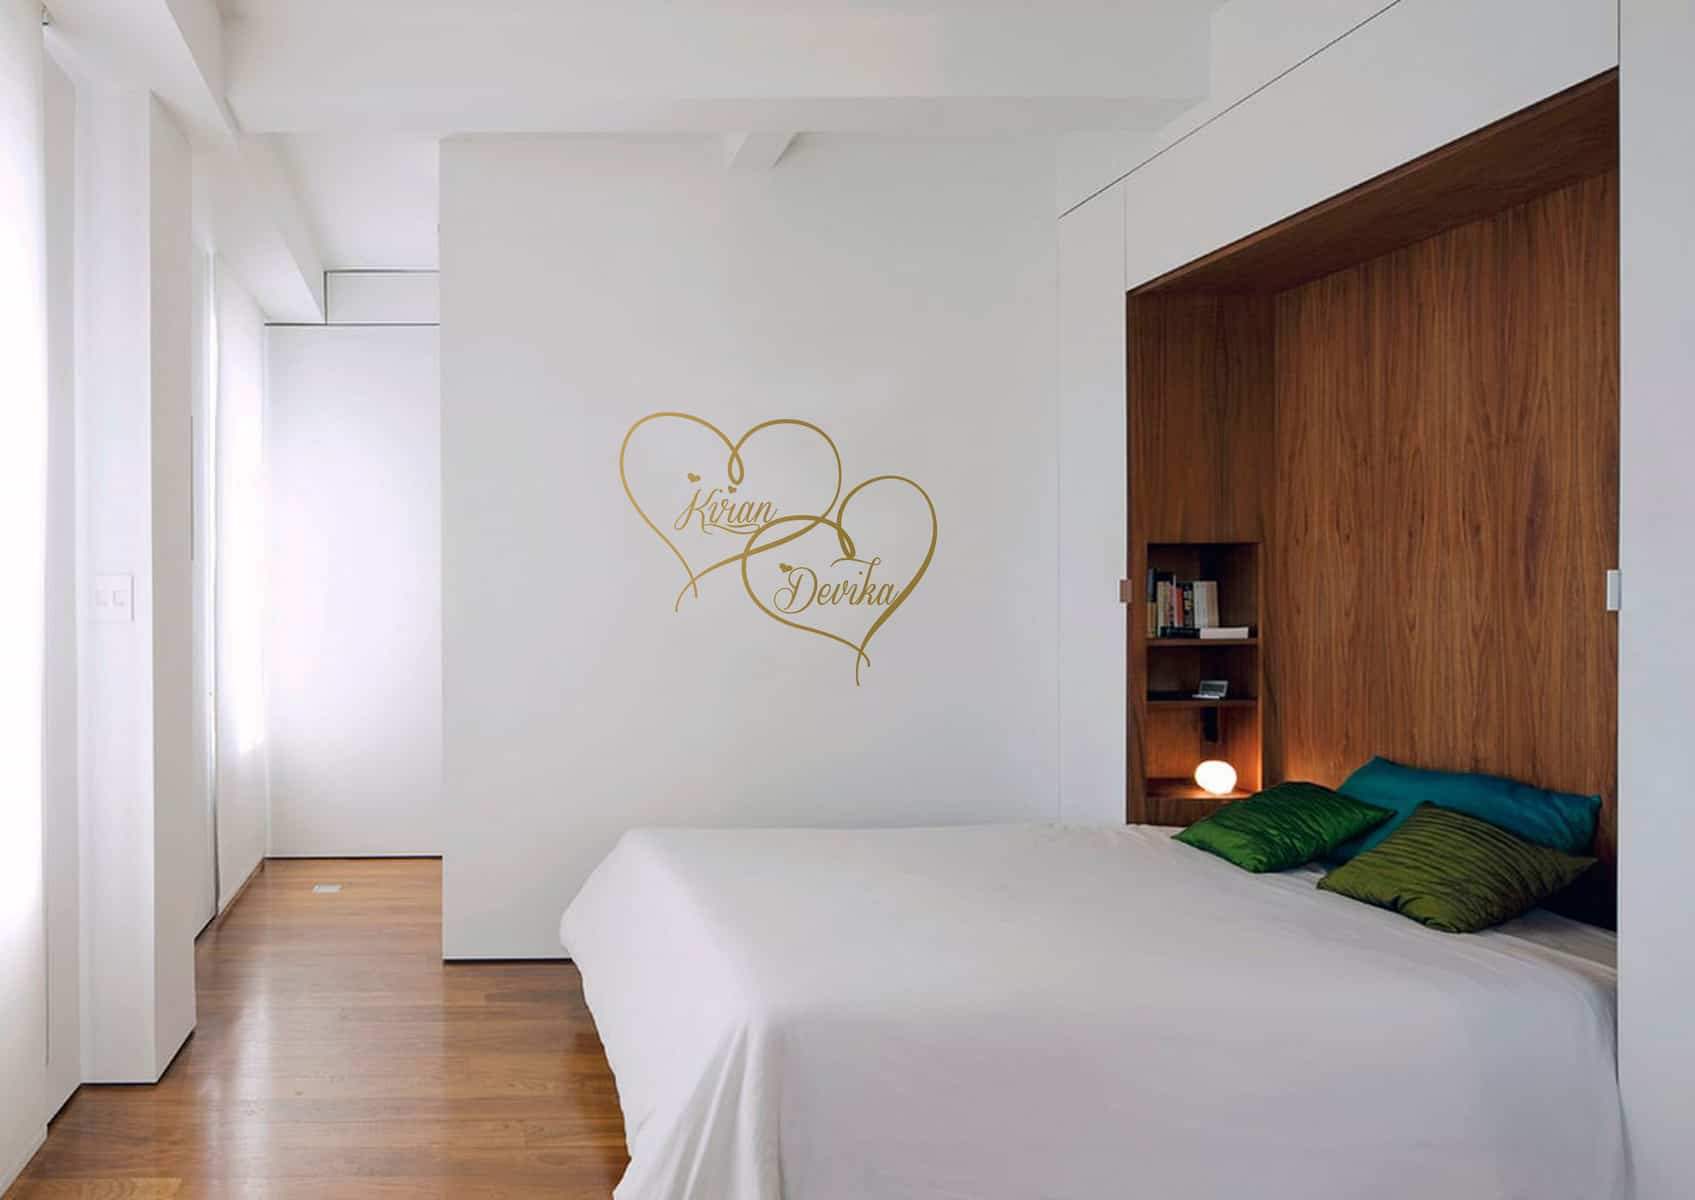 Love Hearts Bedroom2 sticker